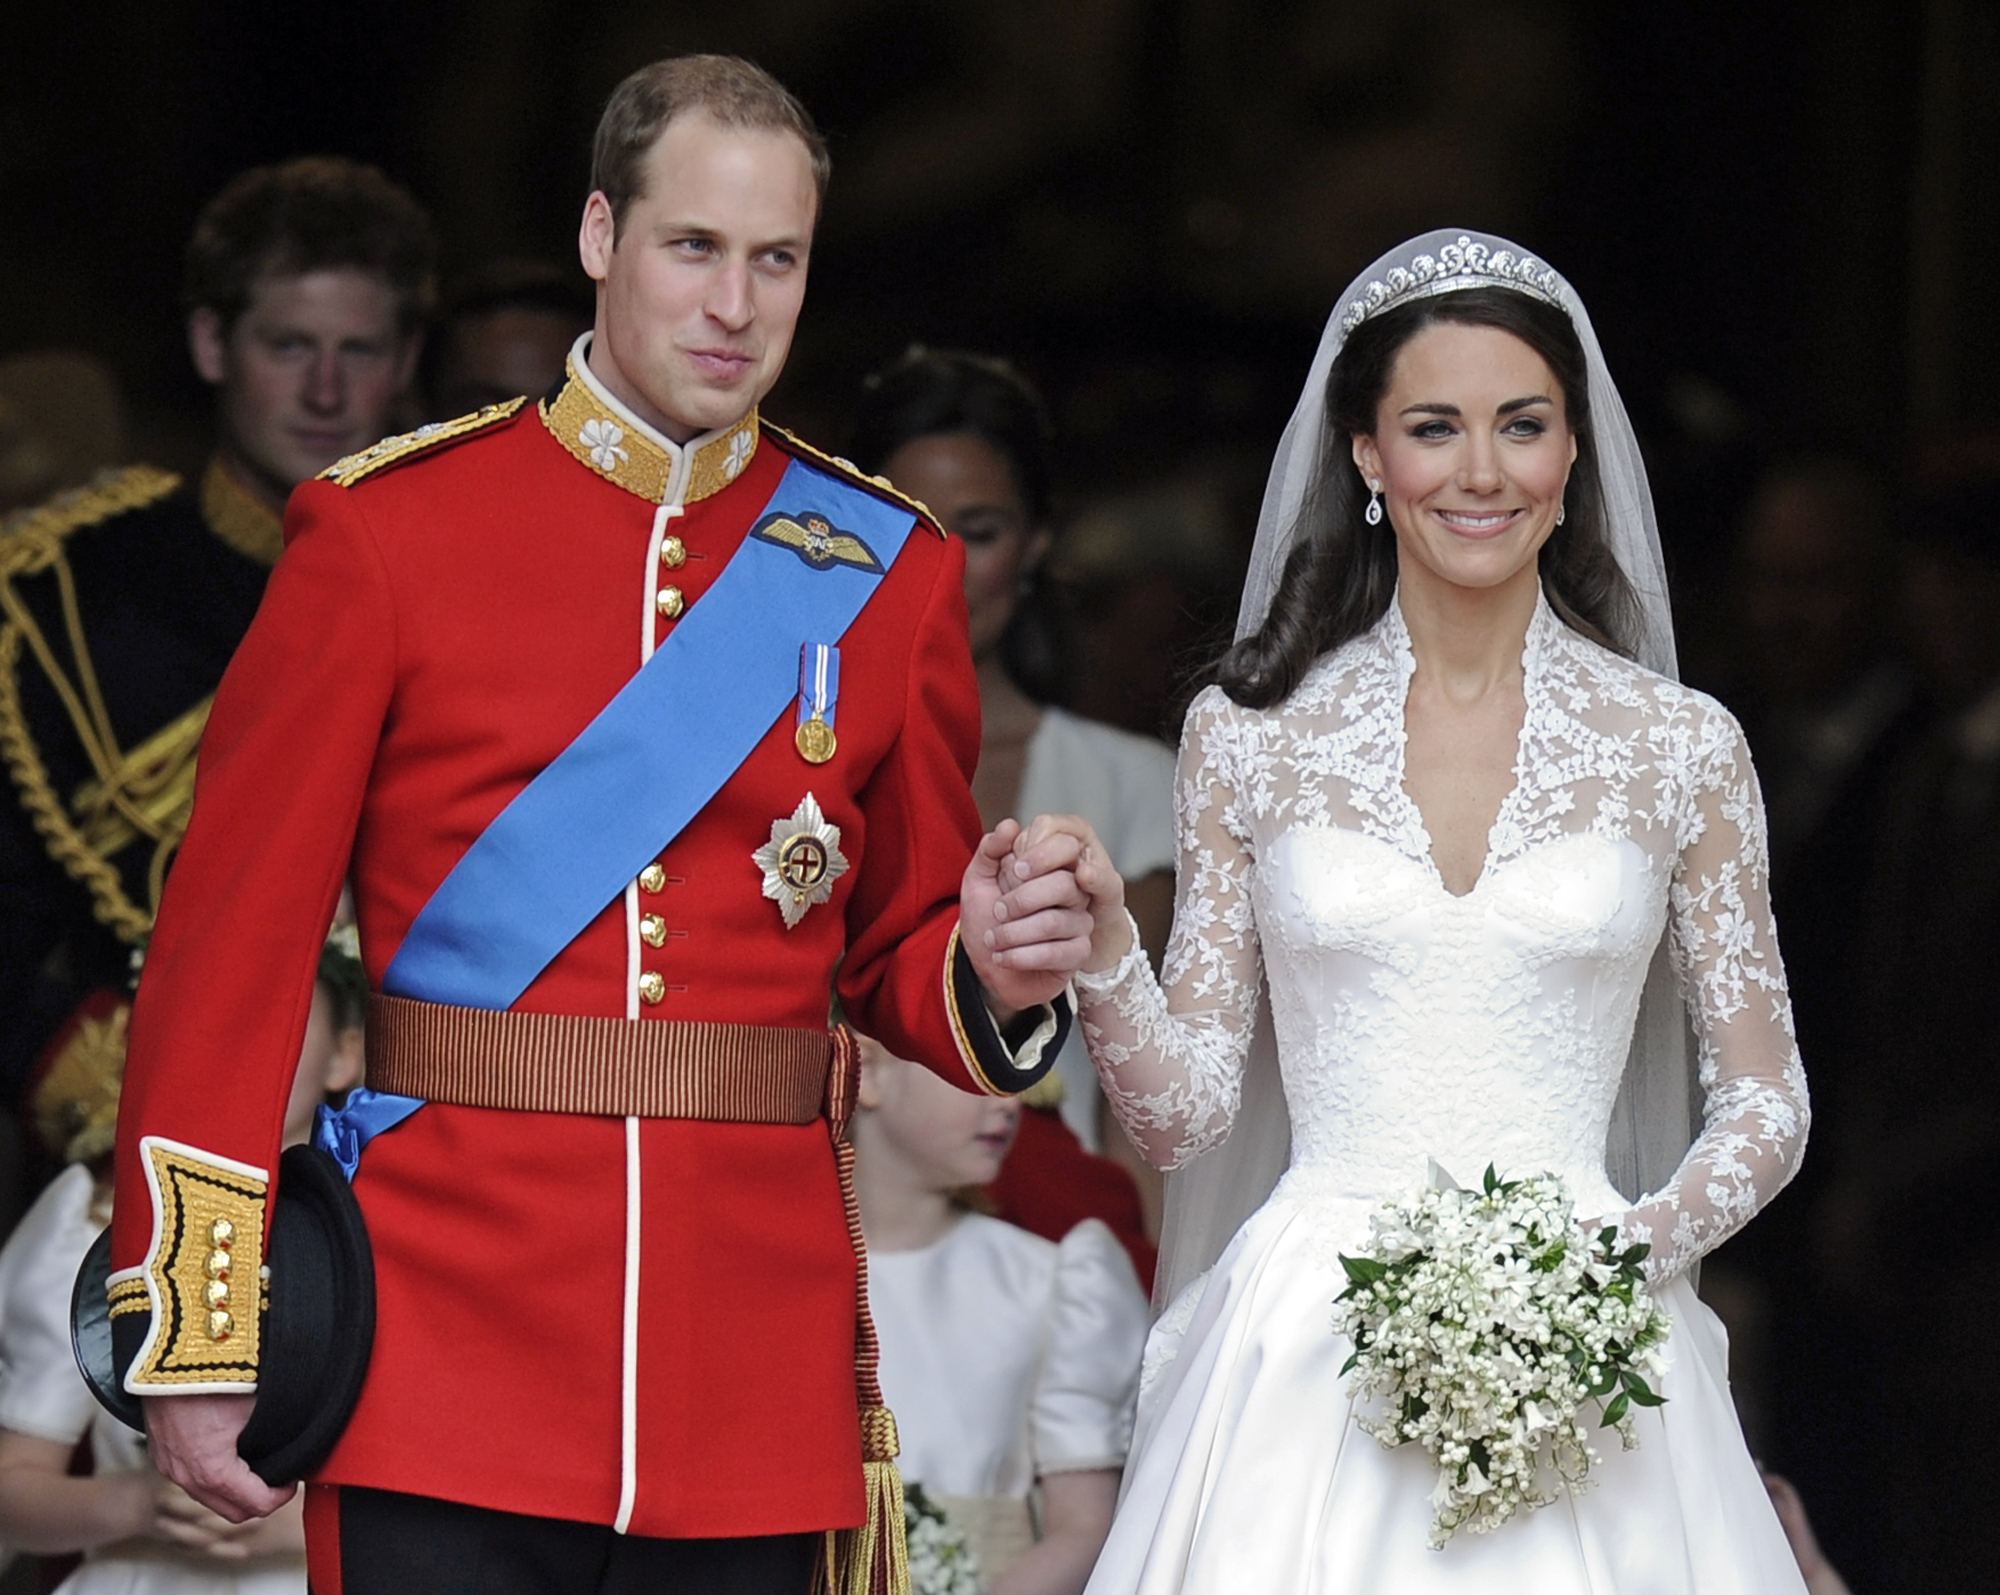 Prince William Catherine prince william and kate middleton 24711829 2000 1595 - William And Catherine Wedding